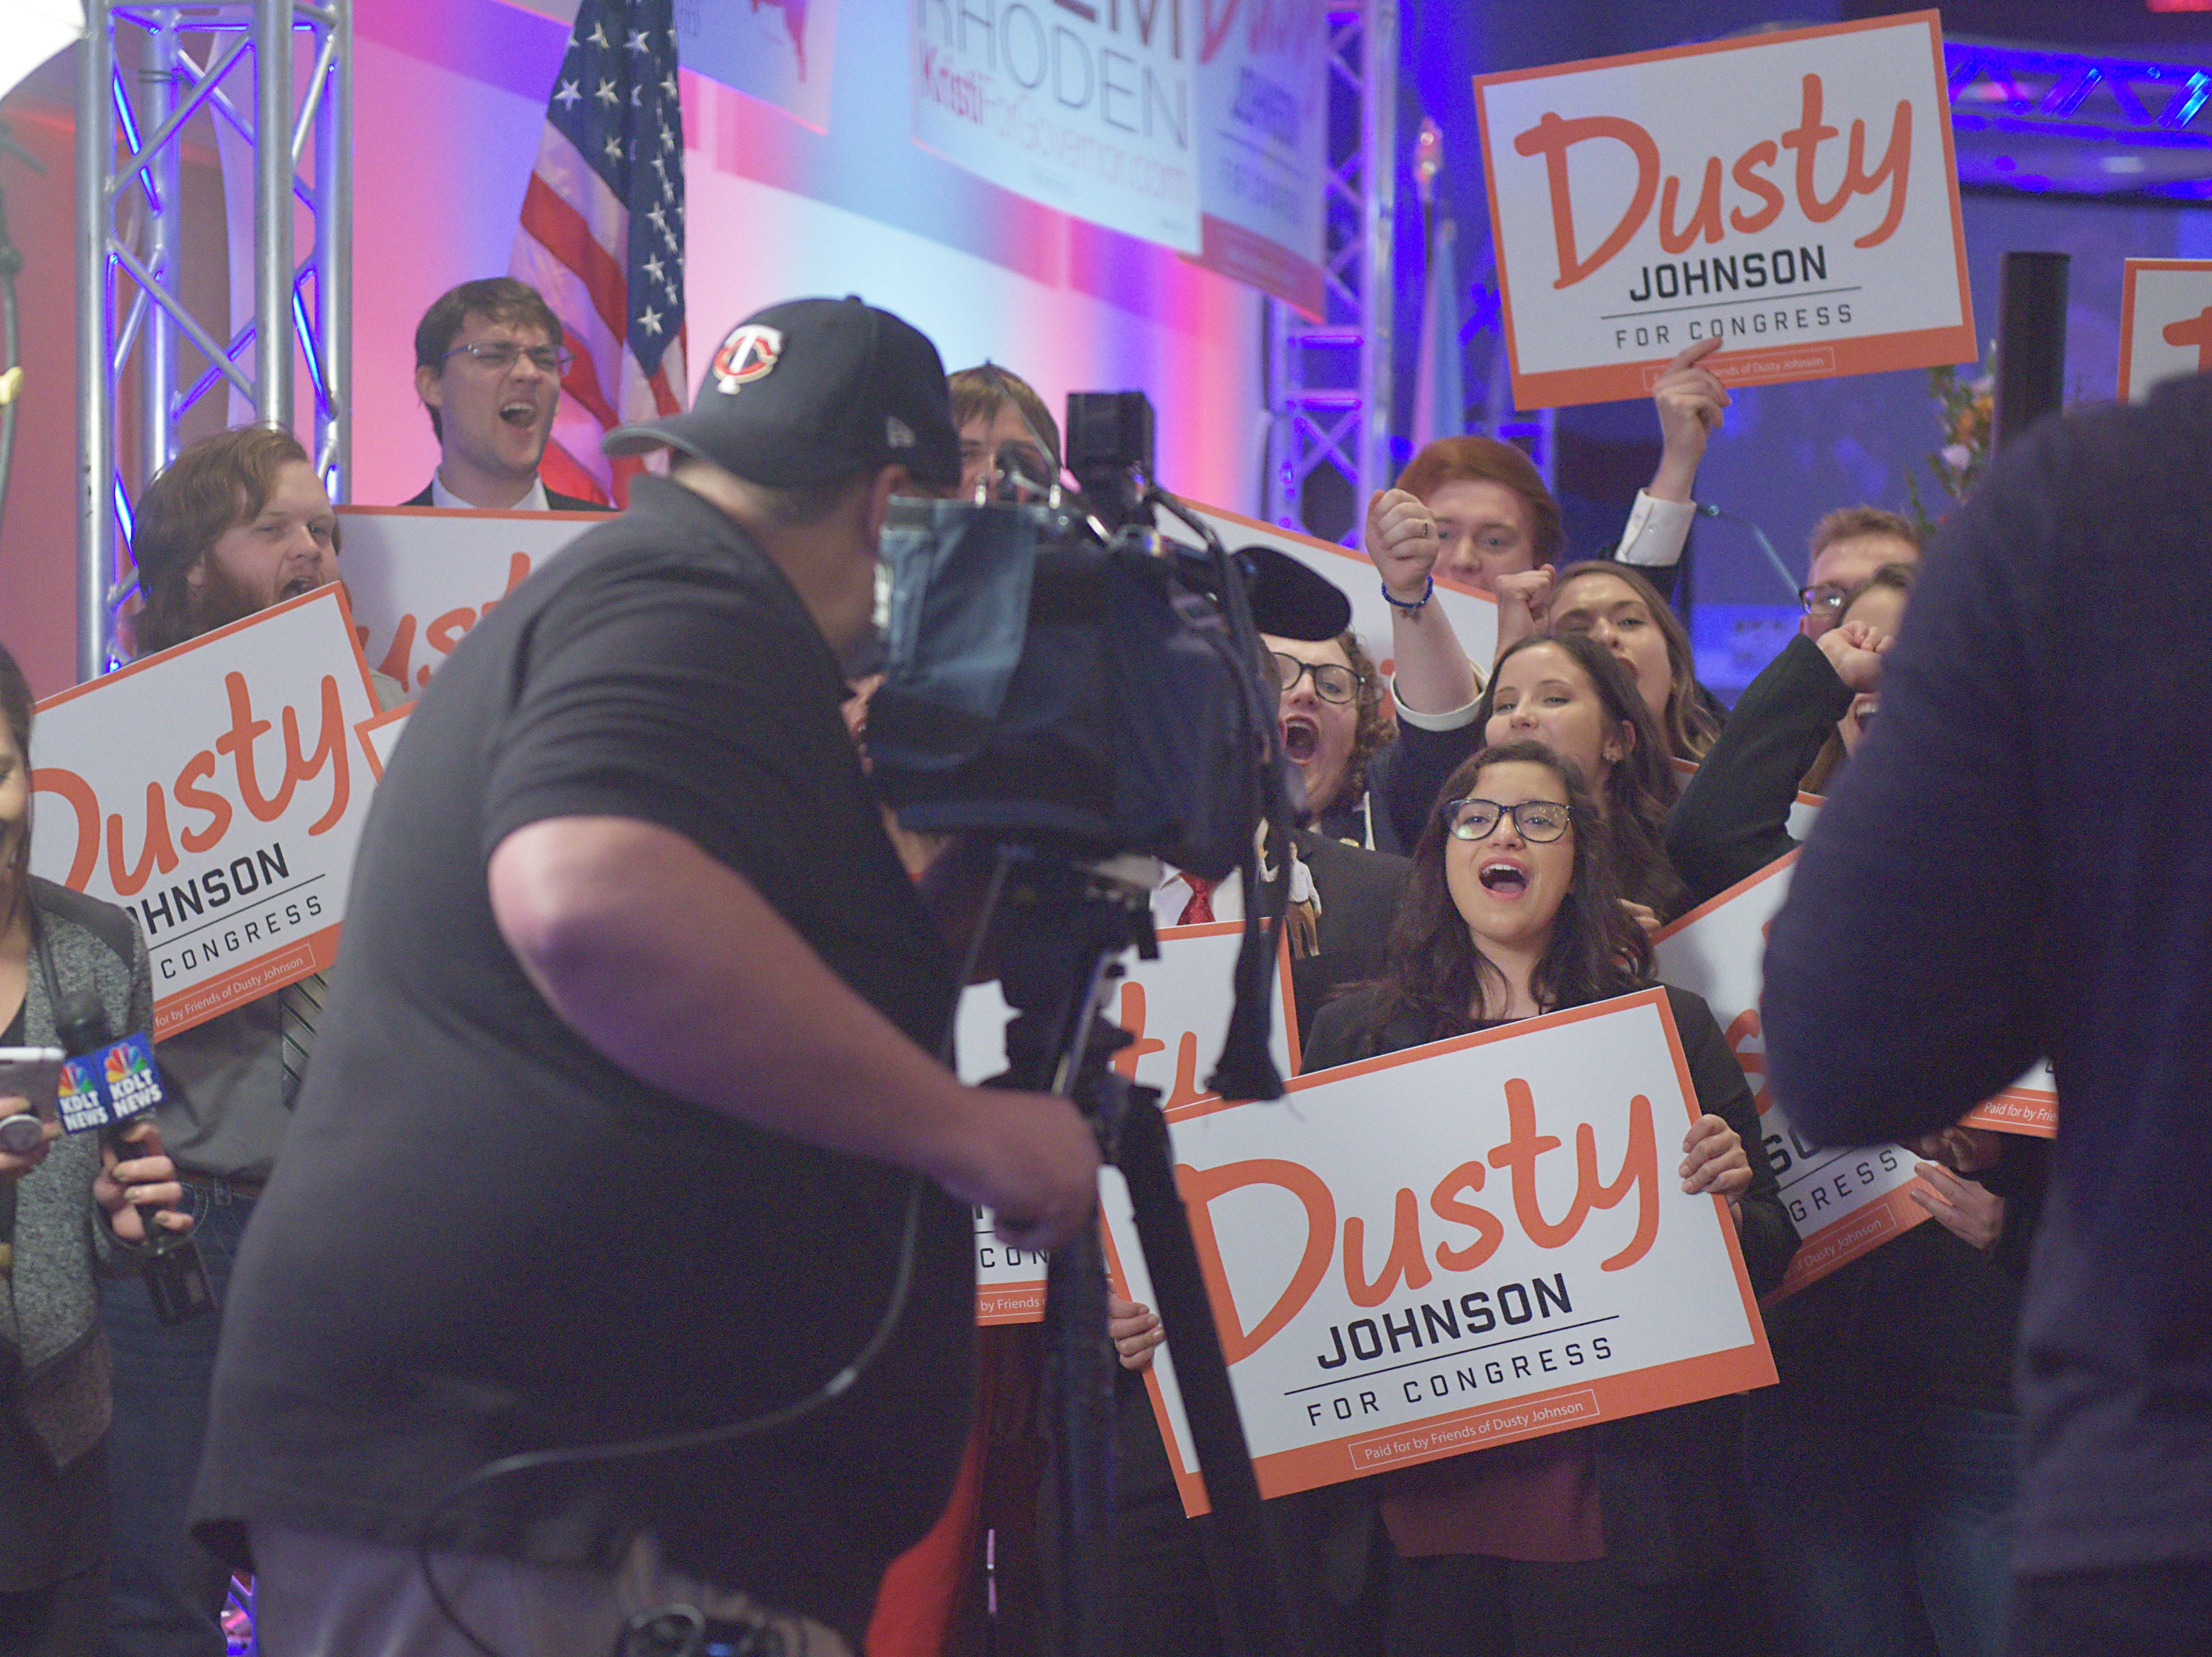 Supporters gather to cheer on Dusty Johnson before he speaks after winning South Dakota's lone U.S. House seat after results are announced Tuesday, Nov. 6, at the Hilton Garden Inn in Sioux Falls.